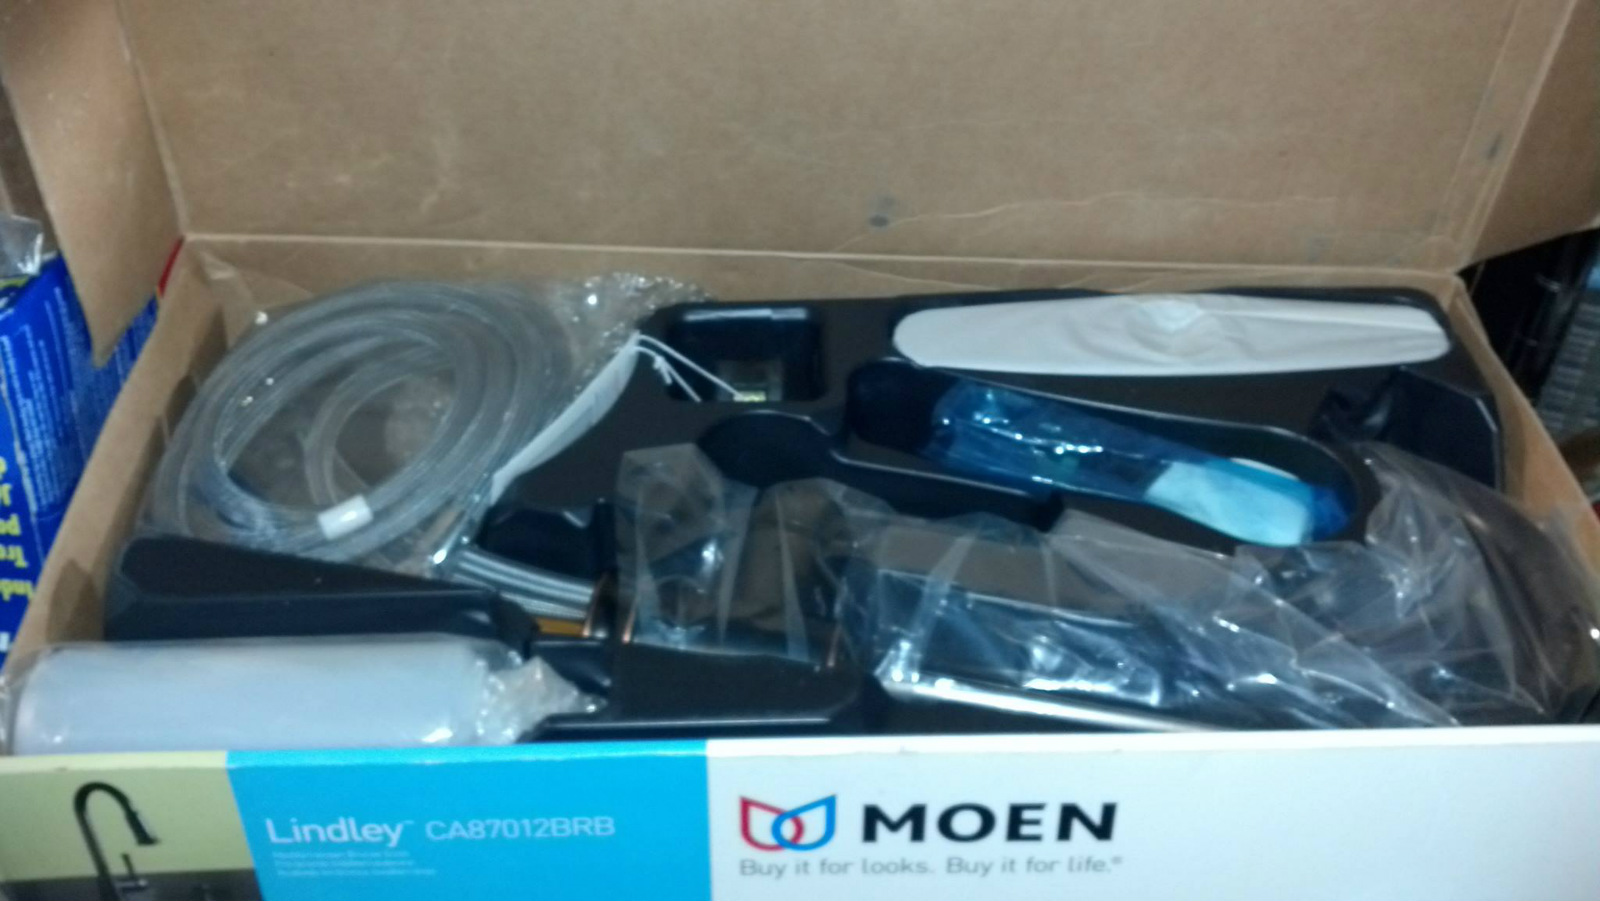 Moen Lindley Kitchen Faucet Moen Ca87012brb Lindley Pull Down Sprayer Kitchen Faucet In